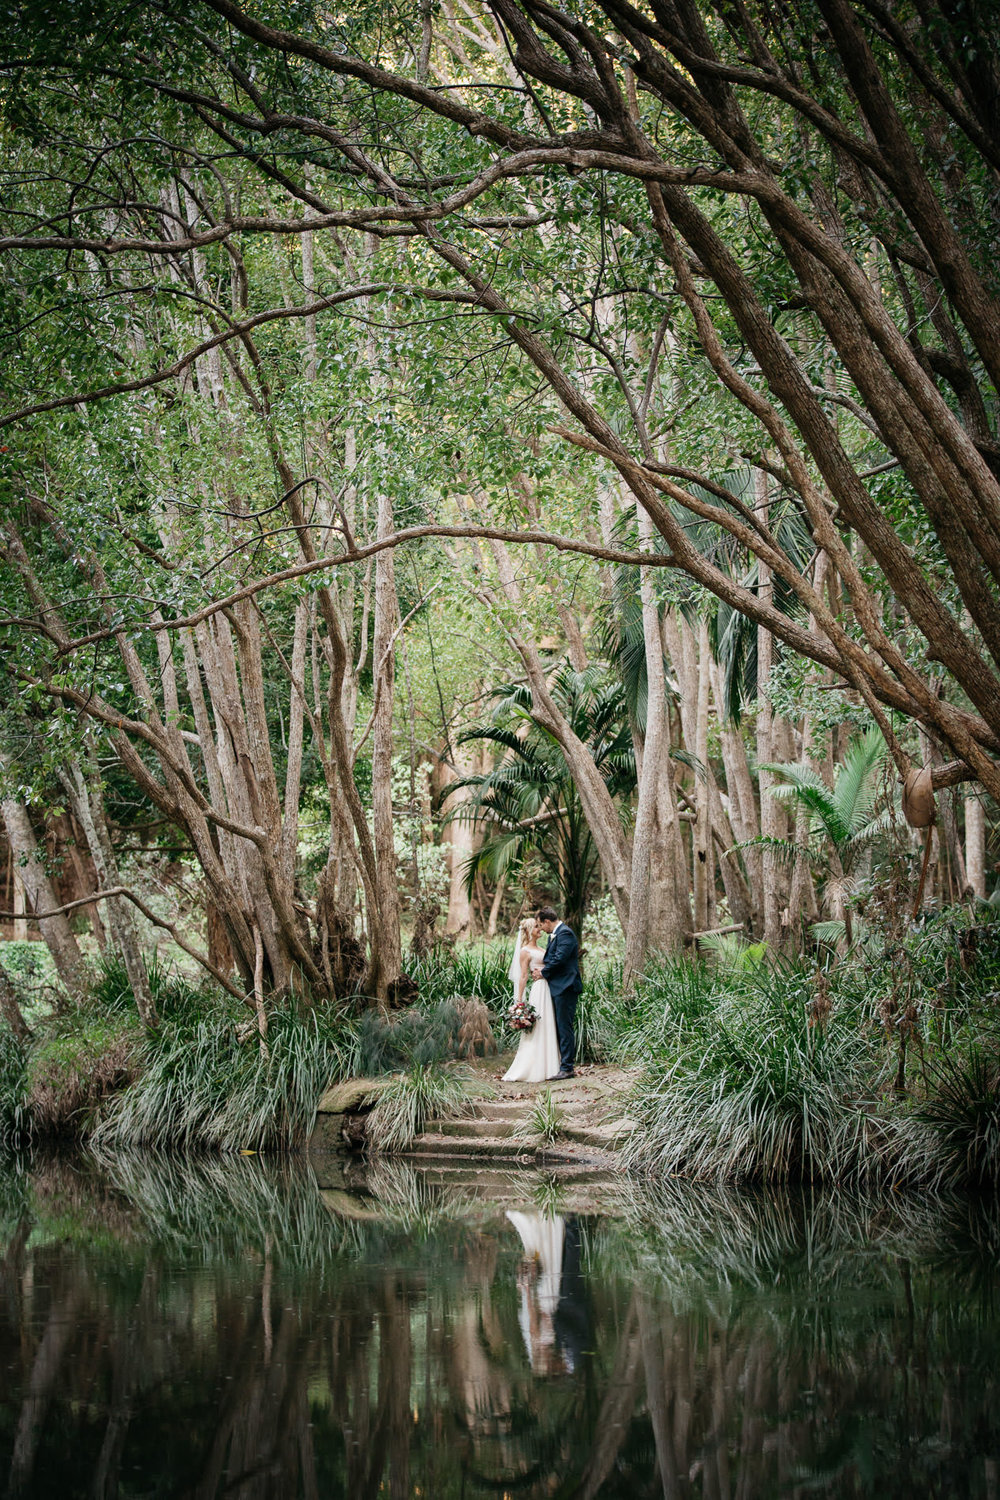 True North Photography_Boomerang Farm_Stacey and Isaac_Gold Coast Wedding_Barm Wedding_Hinterland Wedding-148.jpg